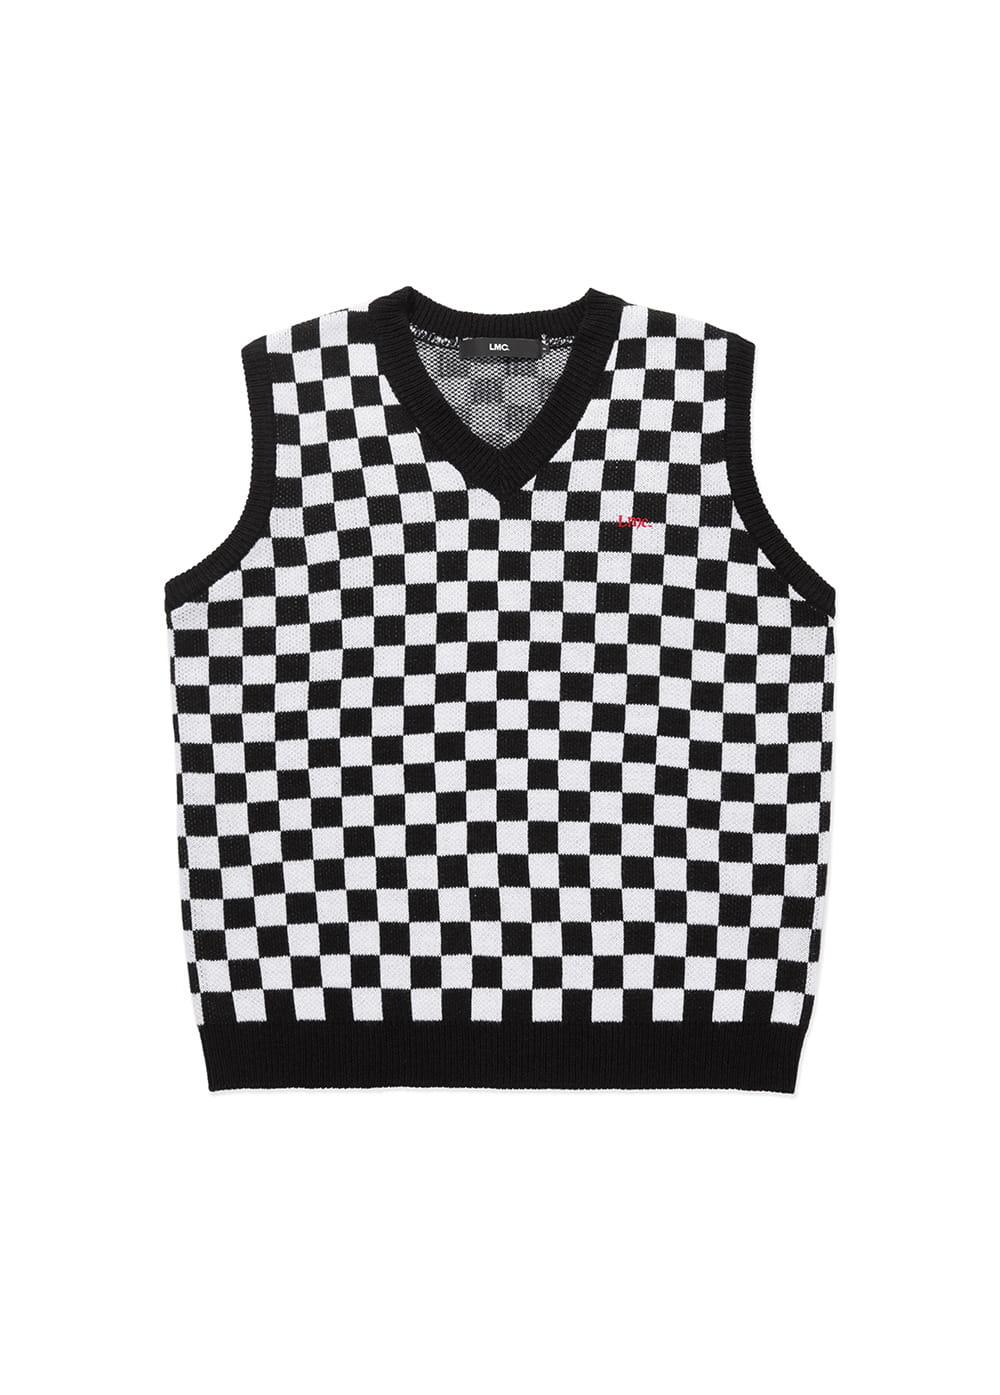 LMC CHECKERBOARD KNIT VEST white/black